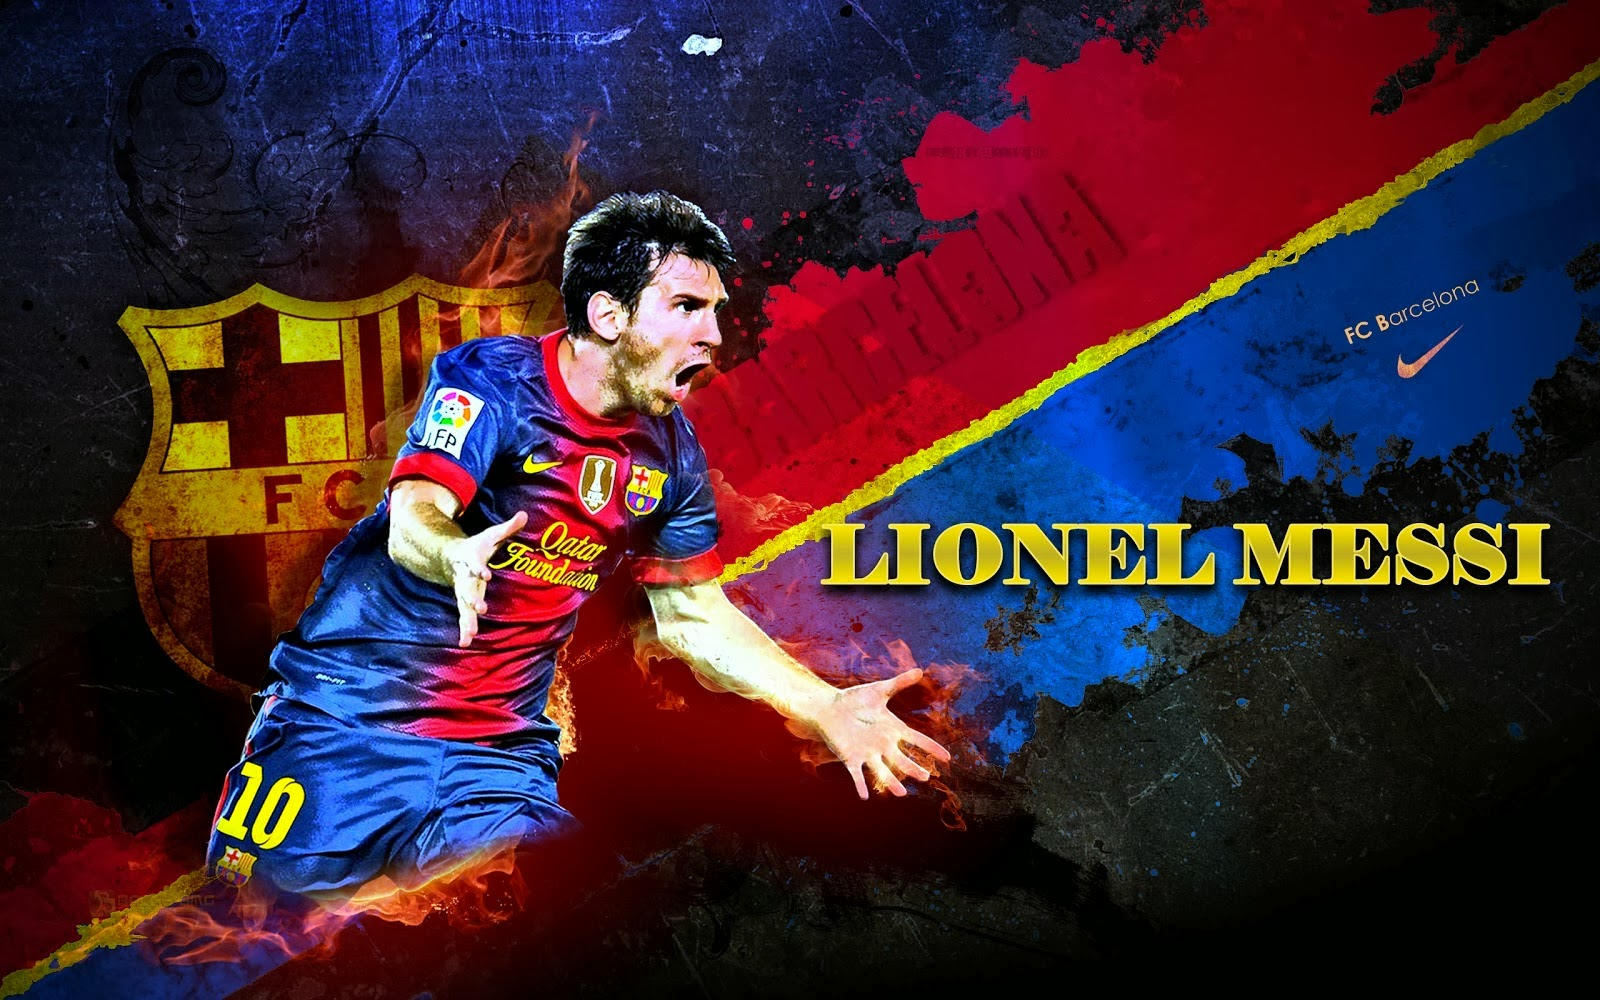 Lionel Messi HQ Wallpapers 2014 2015